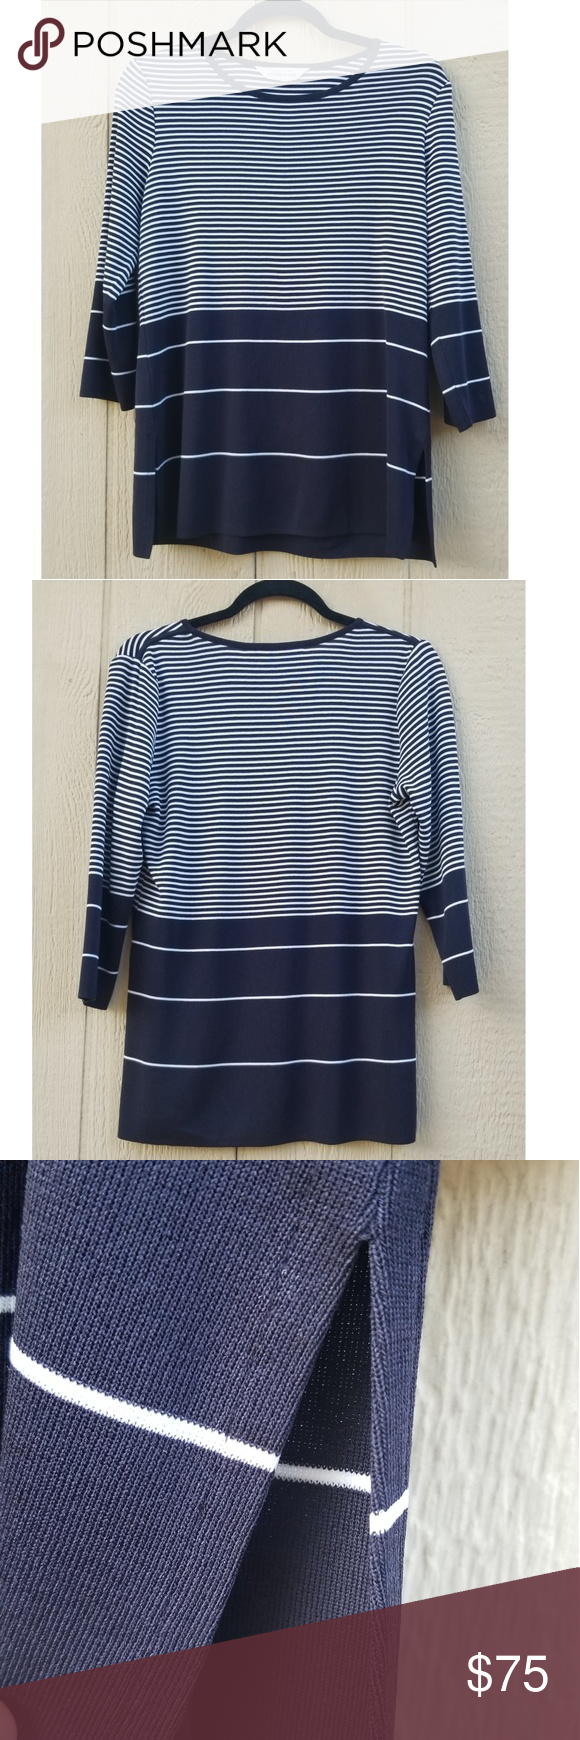 Misook Stripe Dark Navy Blue Top Navy Blue Top Blue Tops Dark Navy Blue